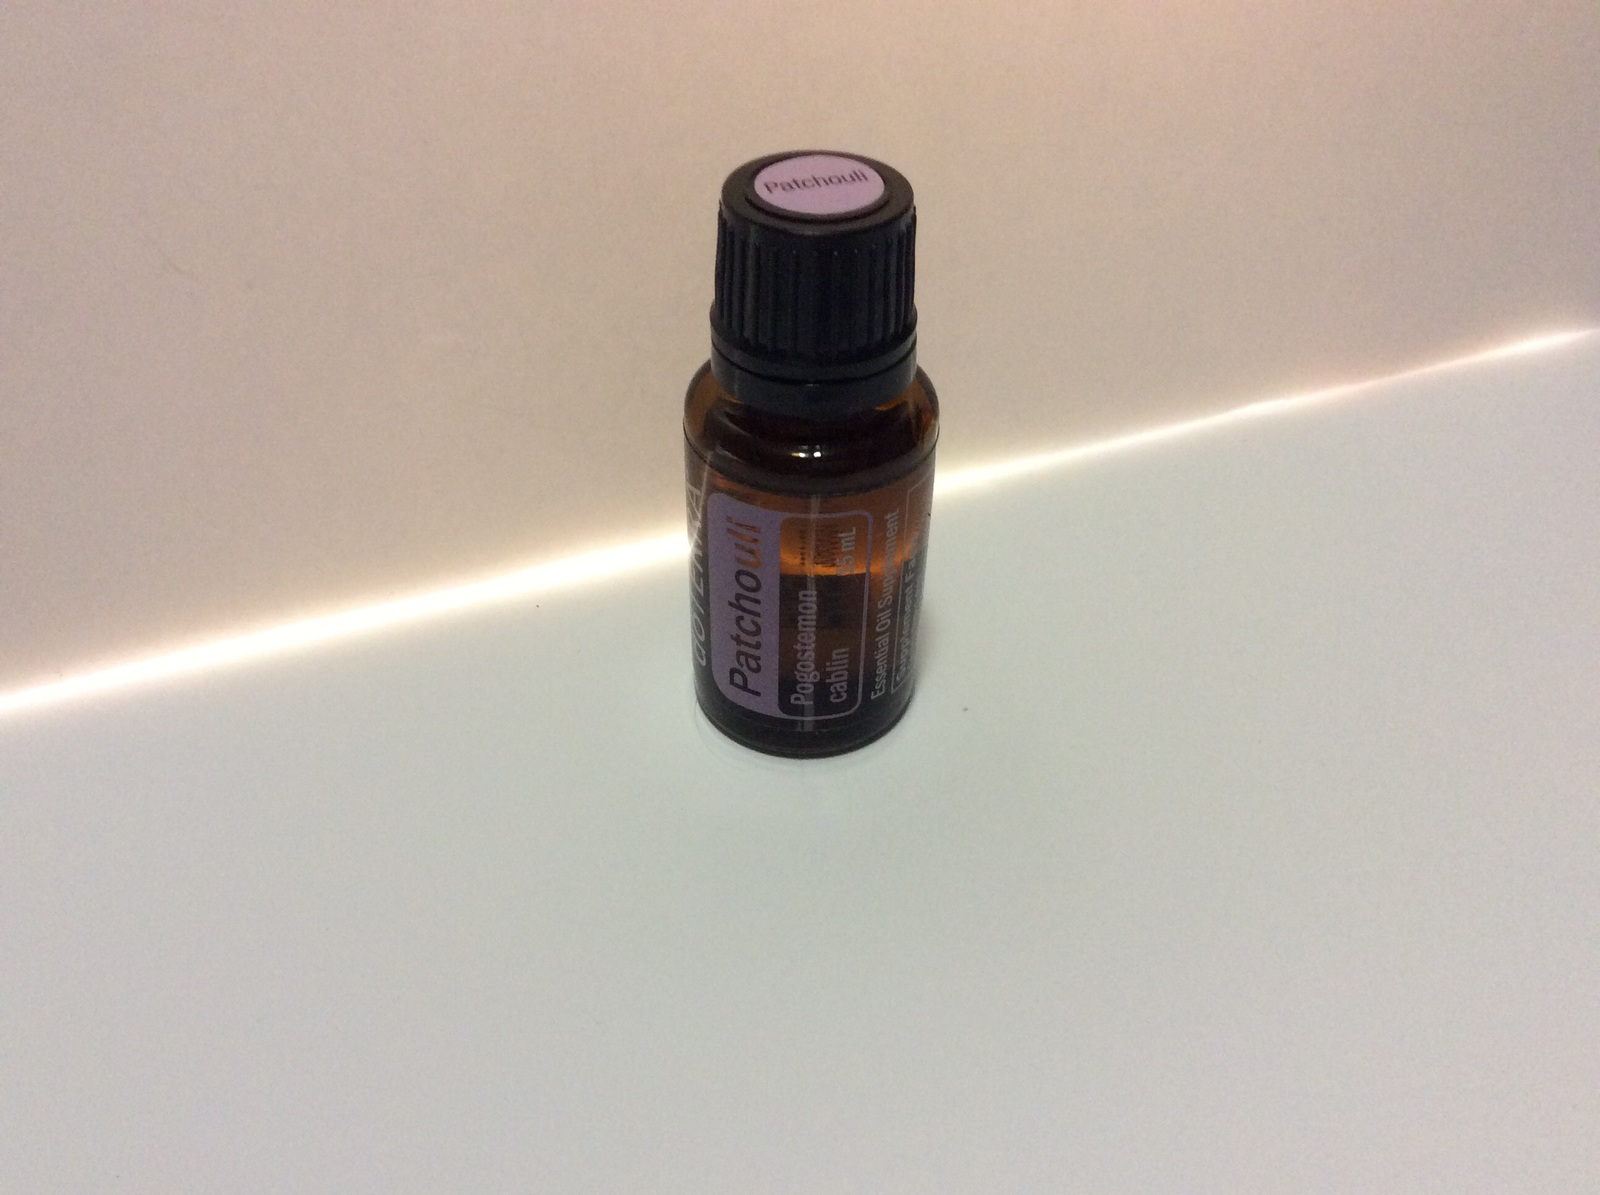 Primary image for doTERRA Patchouli 15ml